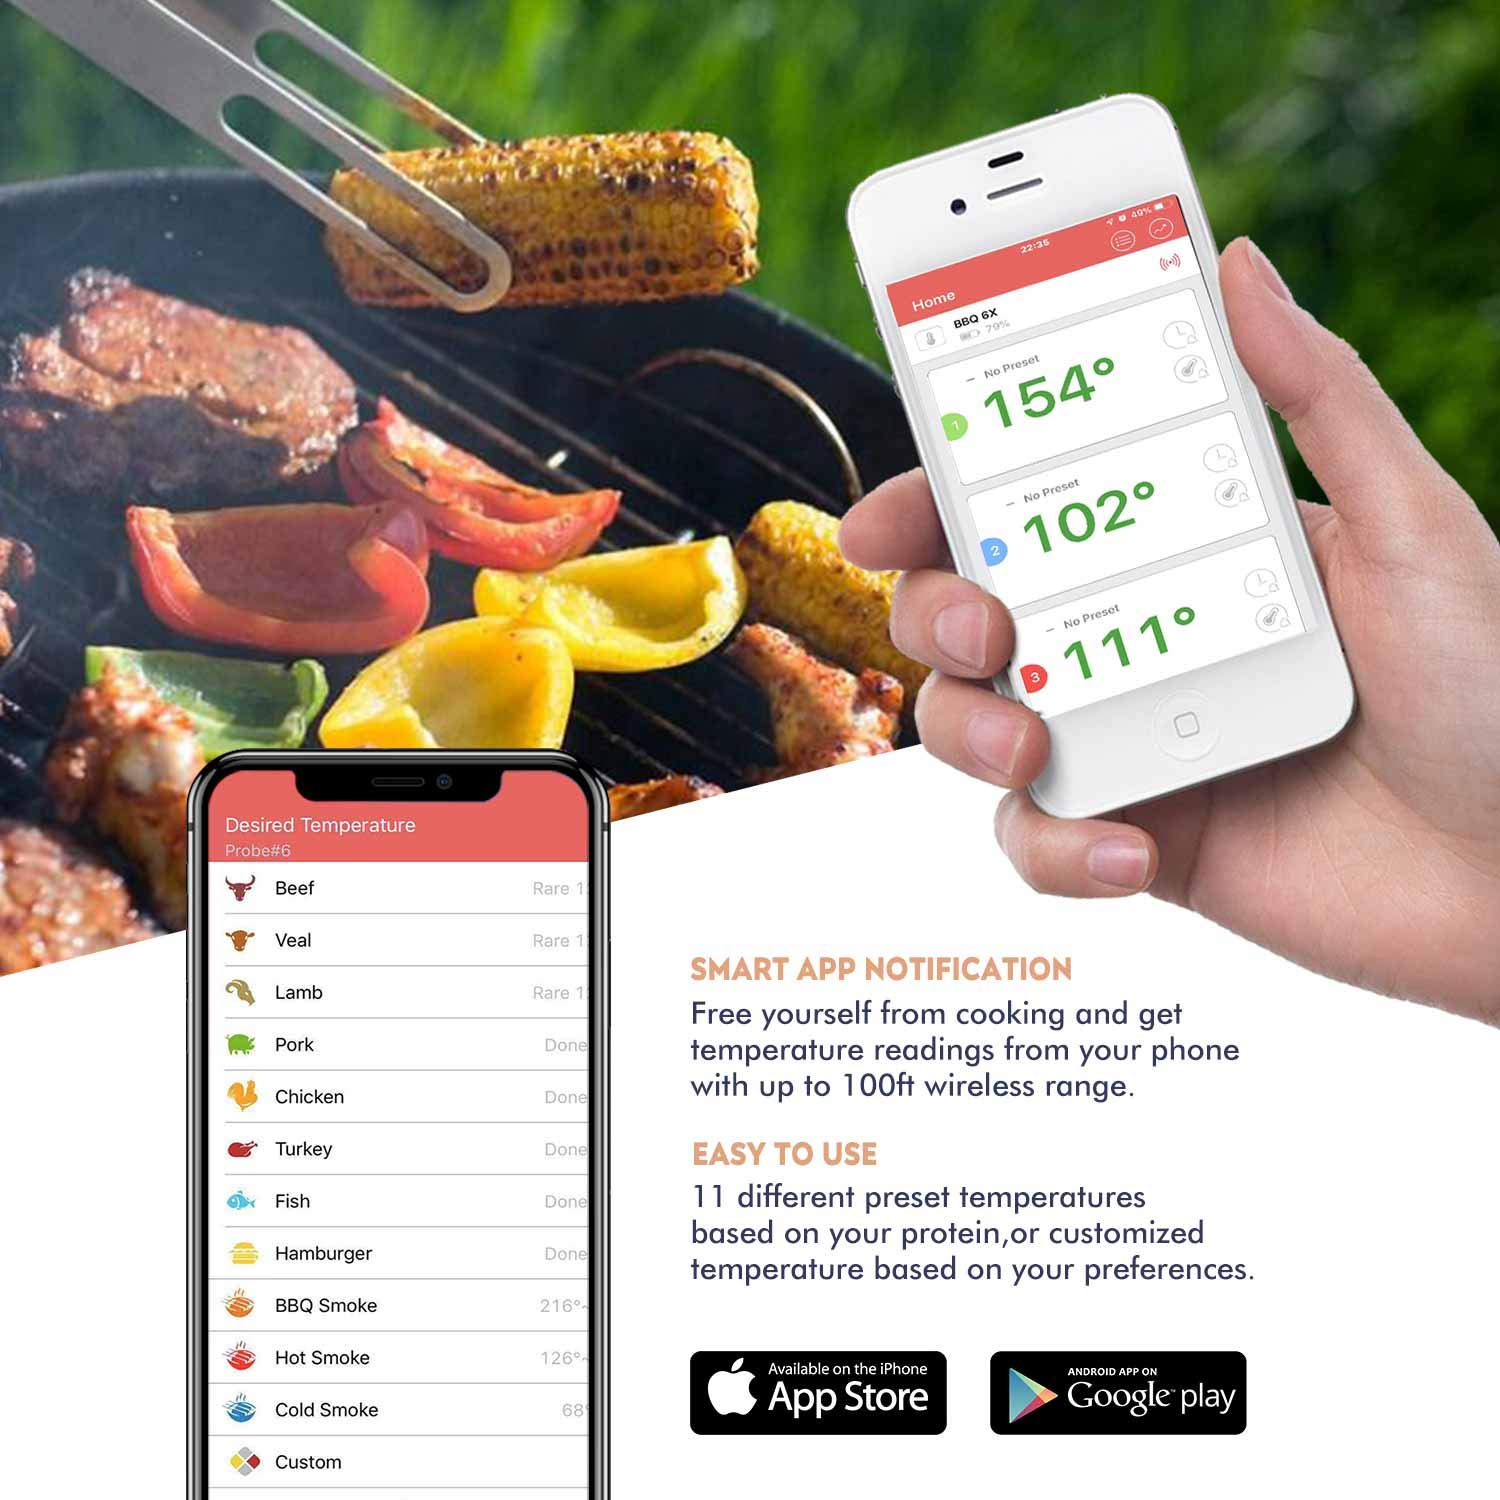 Newkiton Smart Wireless Meat Thermometer with 6 Stainless Steel Probes APP Controlled Bluetooth Digital Thermometer for Cooking Smoker Grill Barbecue Oven Kitchen Support iOS /& Android